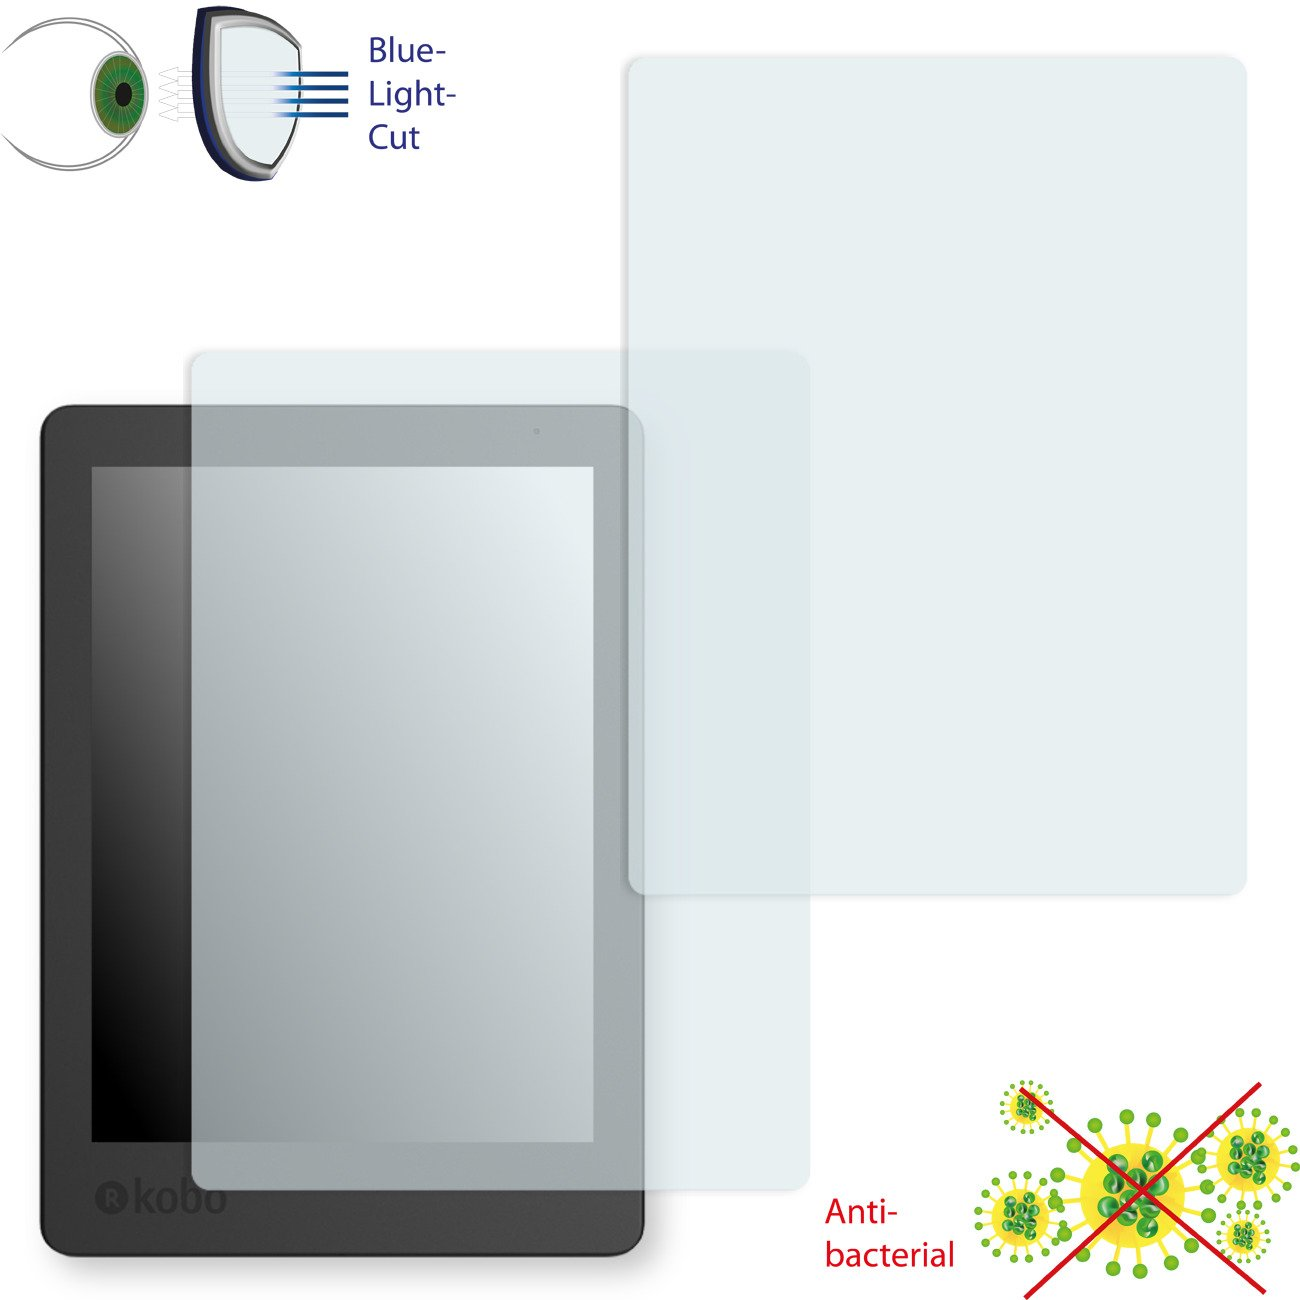 2 x DISAGU ClearScreen Screen Protection Film for Kobo Aura Edition 2 Antibacterial, BlueLight Filter Protective Film #dh7597_2